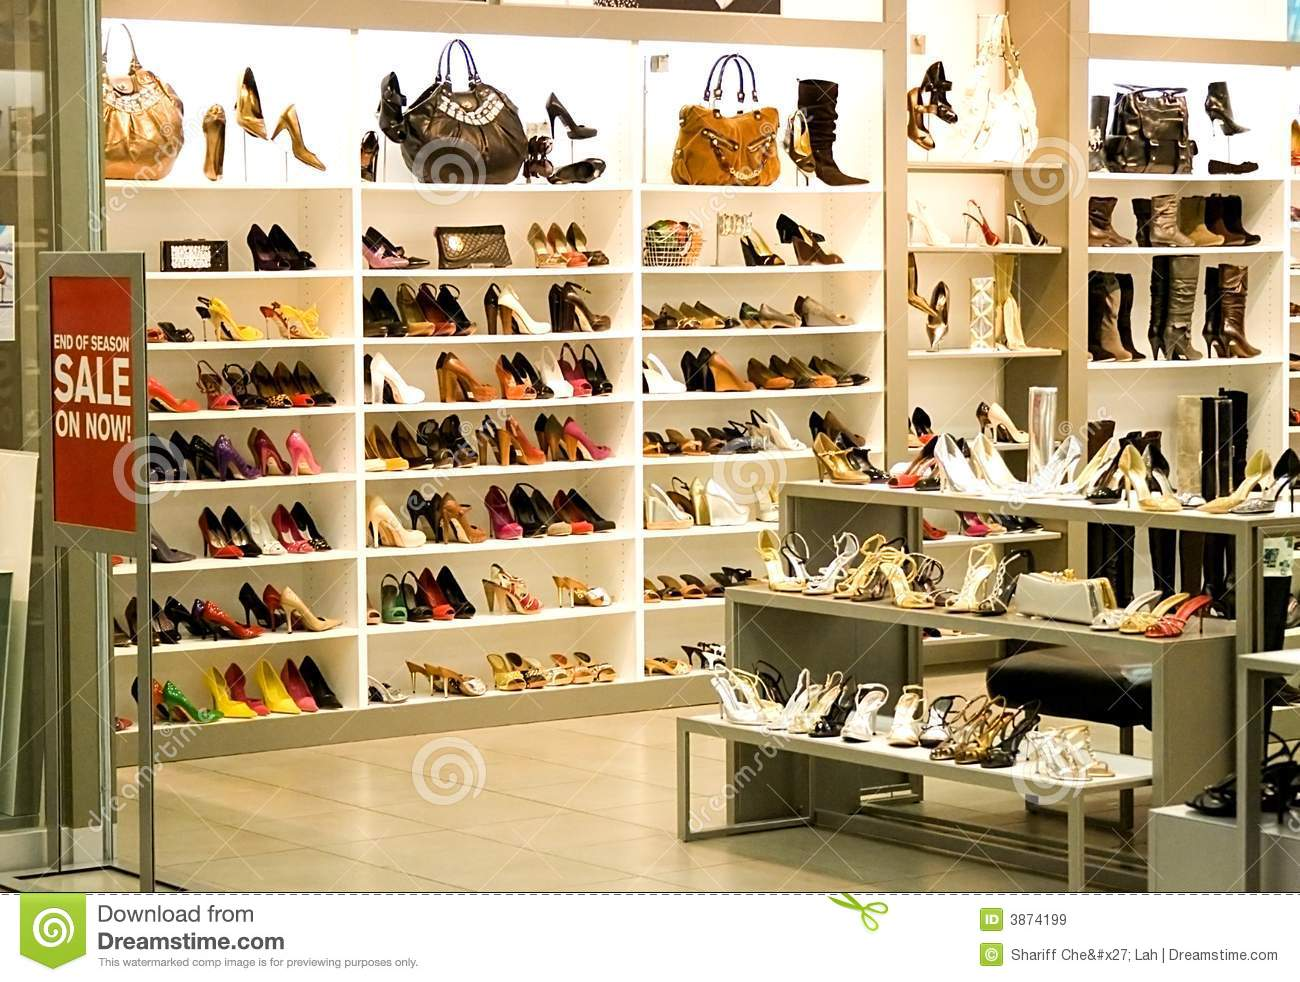 973a430a183 Shoe Shop stock image. Image of style, footwear, shopping - 3874199